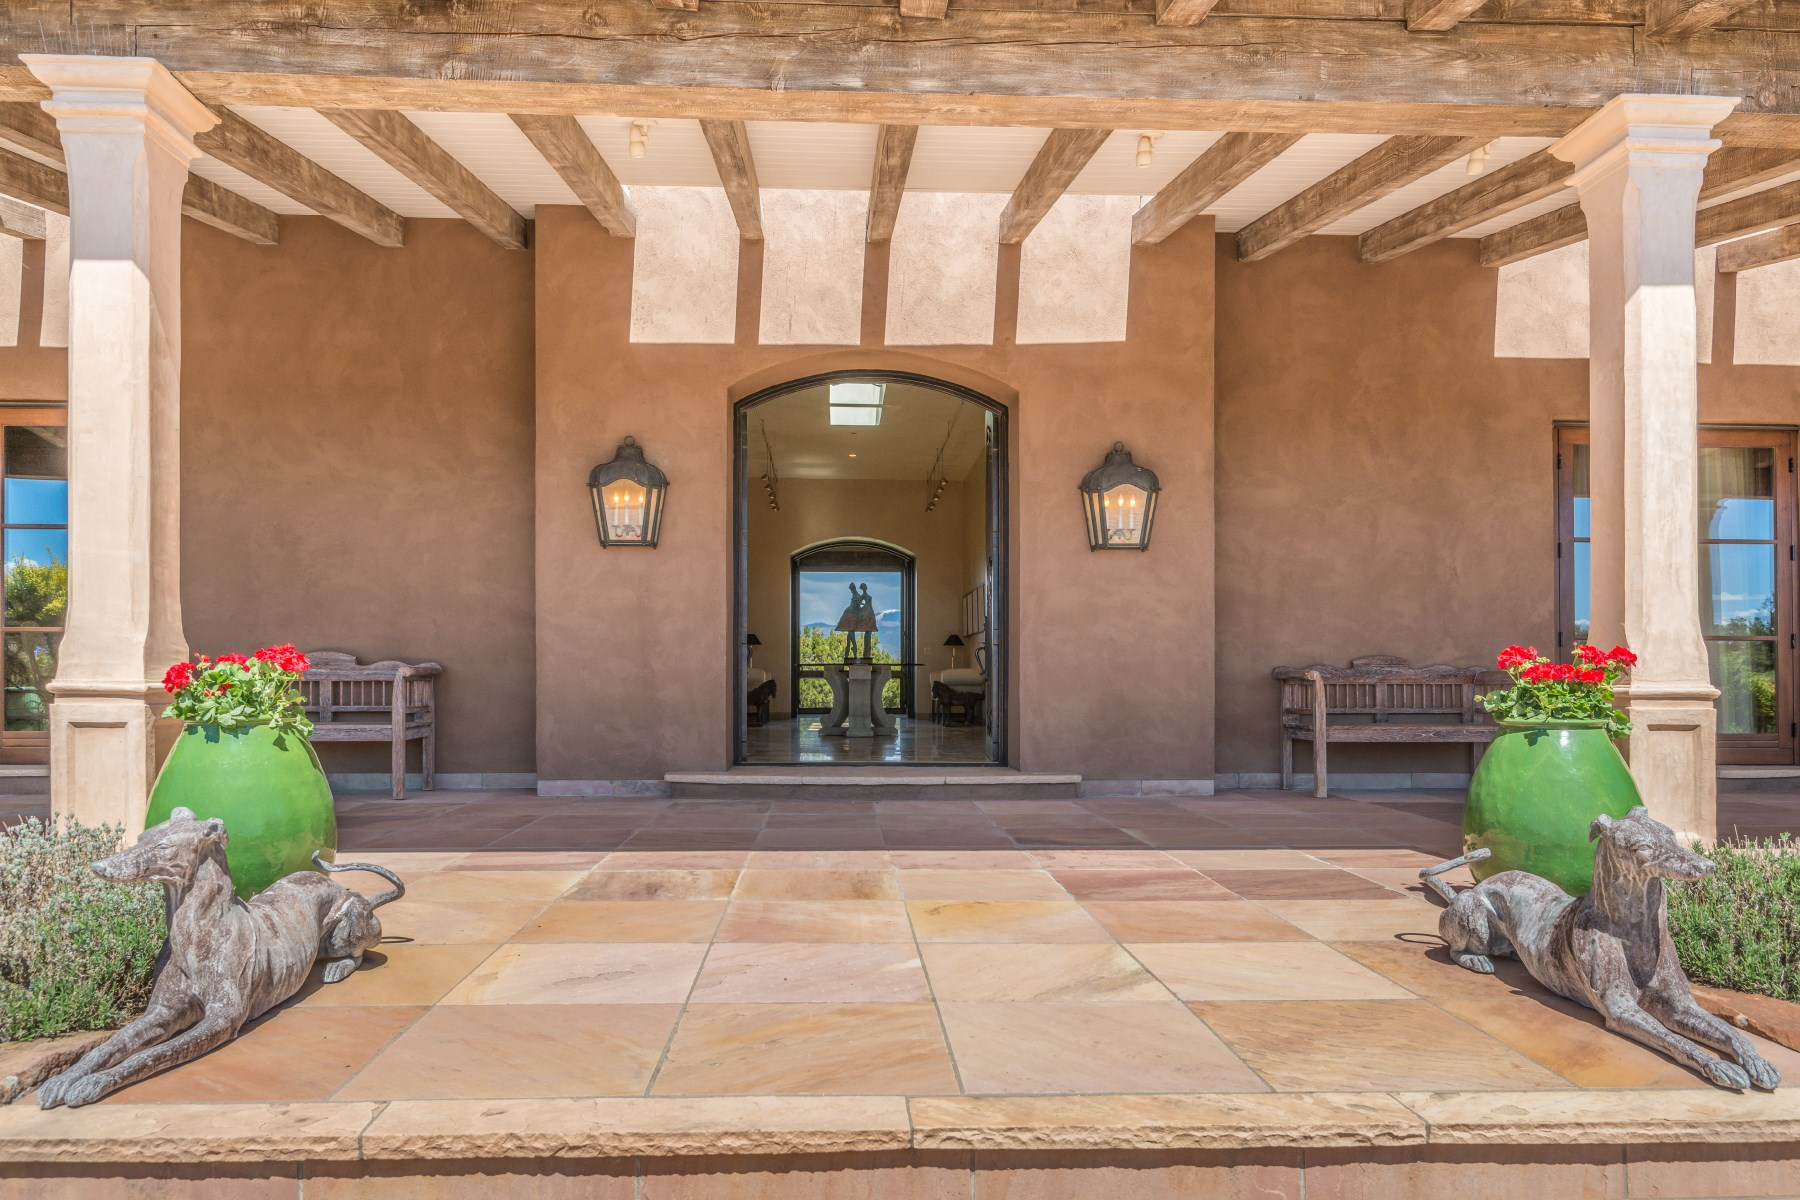 Single Family Home for Sale at Hacienda Bella Vista Santa Fe, New Mexico, 87506 United States